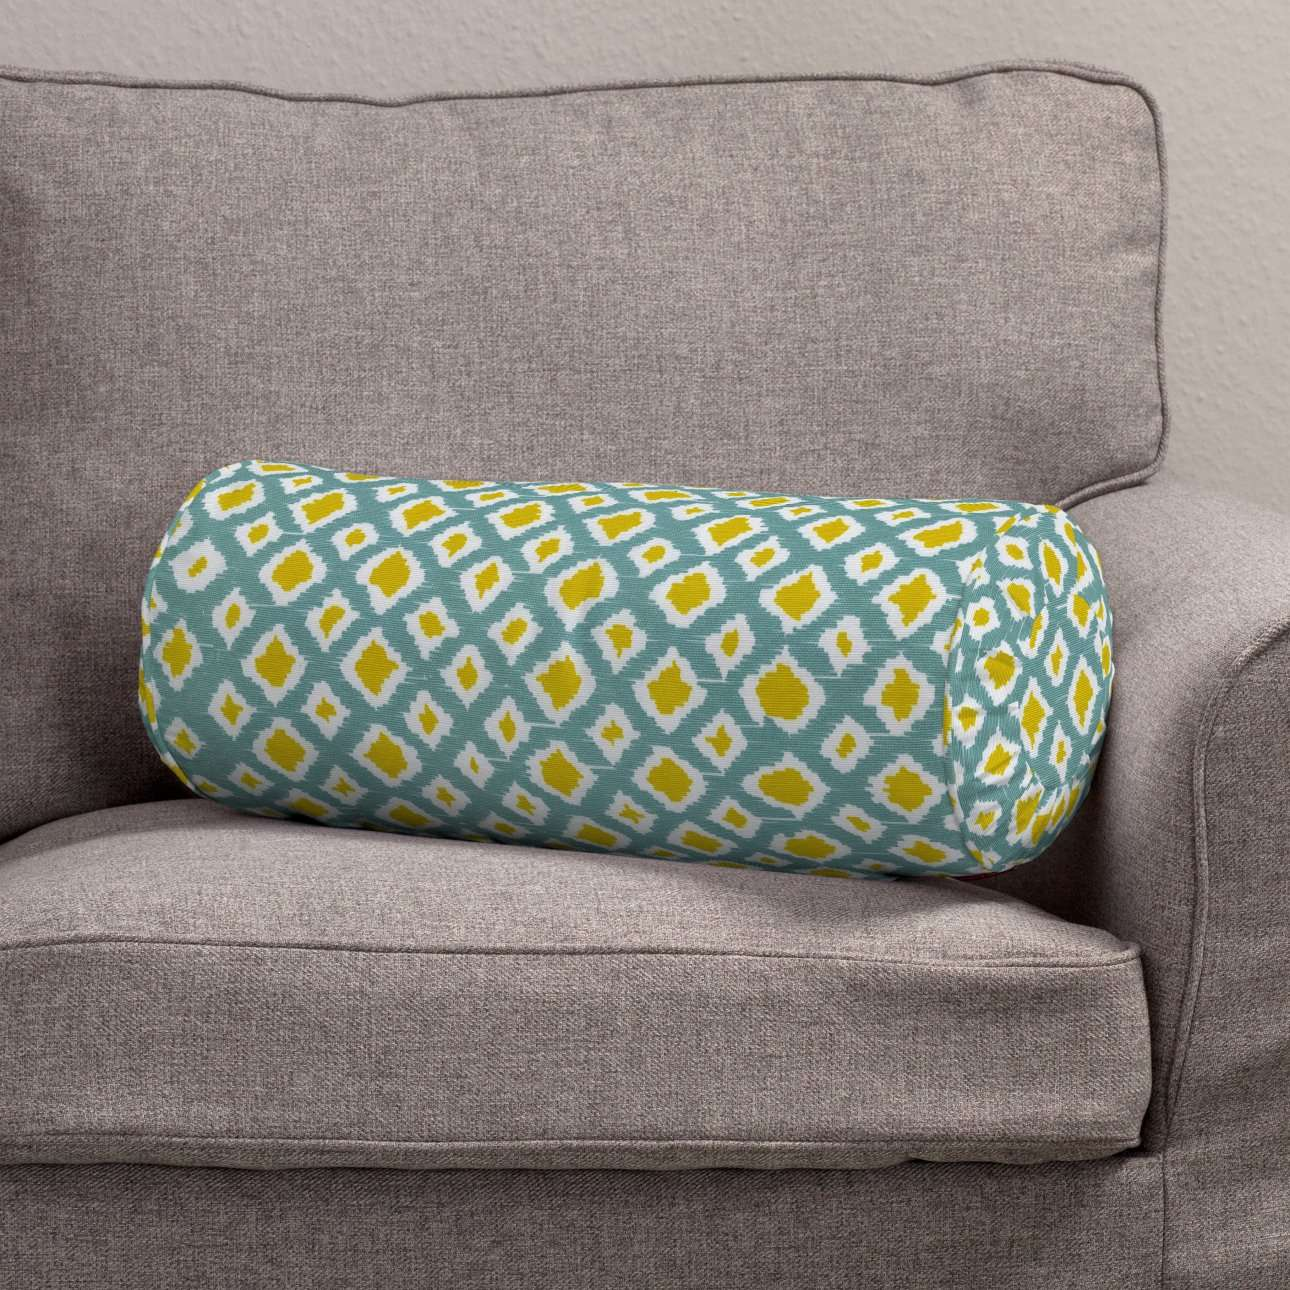 Bolster cushion with pleats in collection Comics/Geometrical, fabric: 141-20